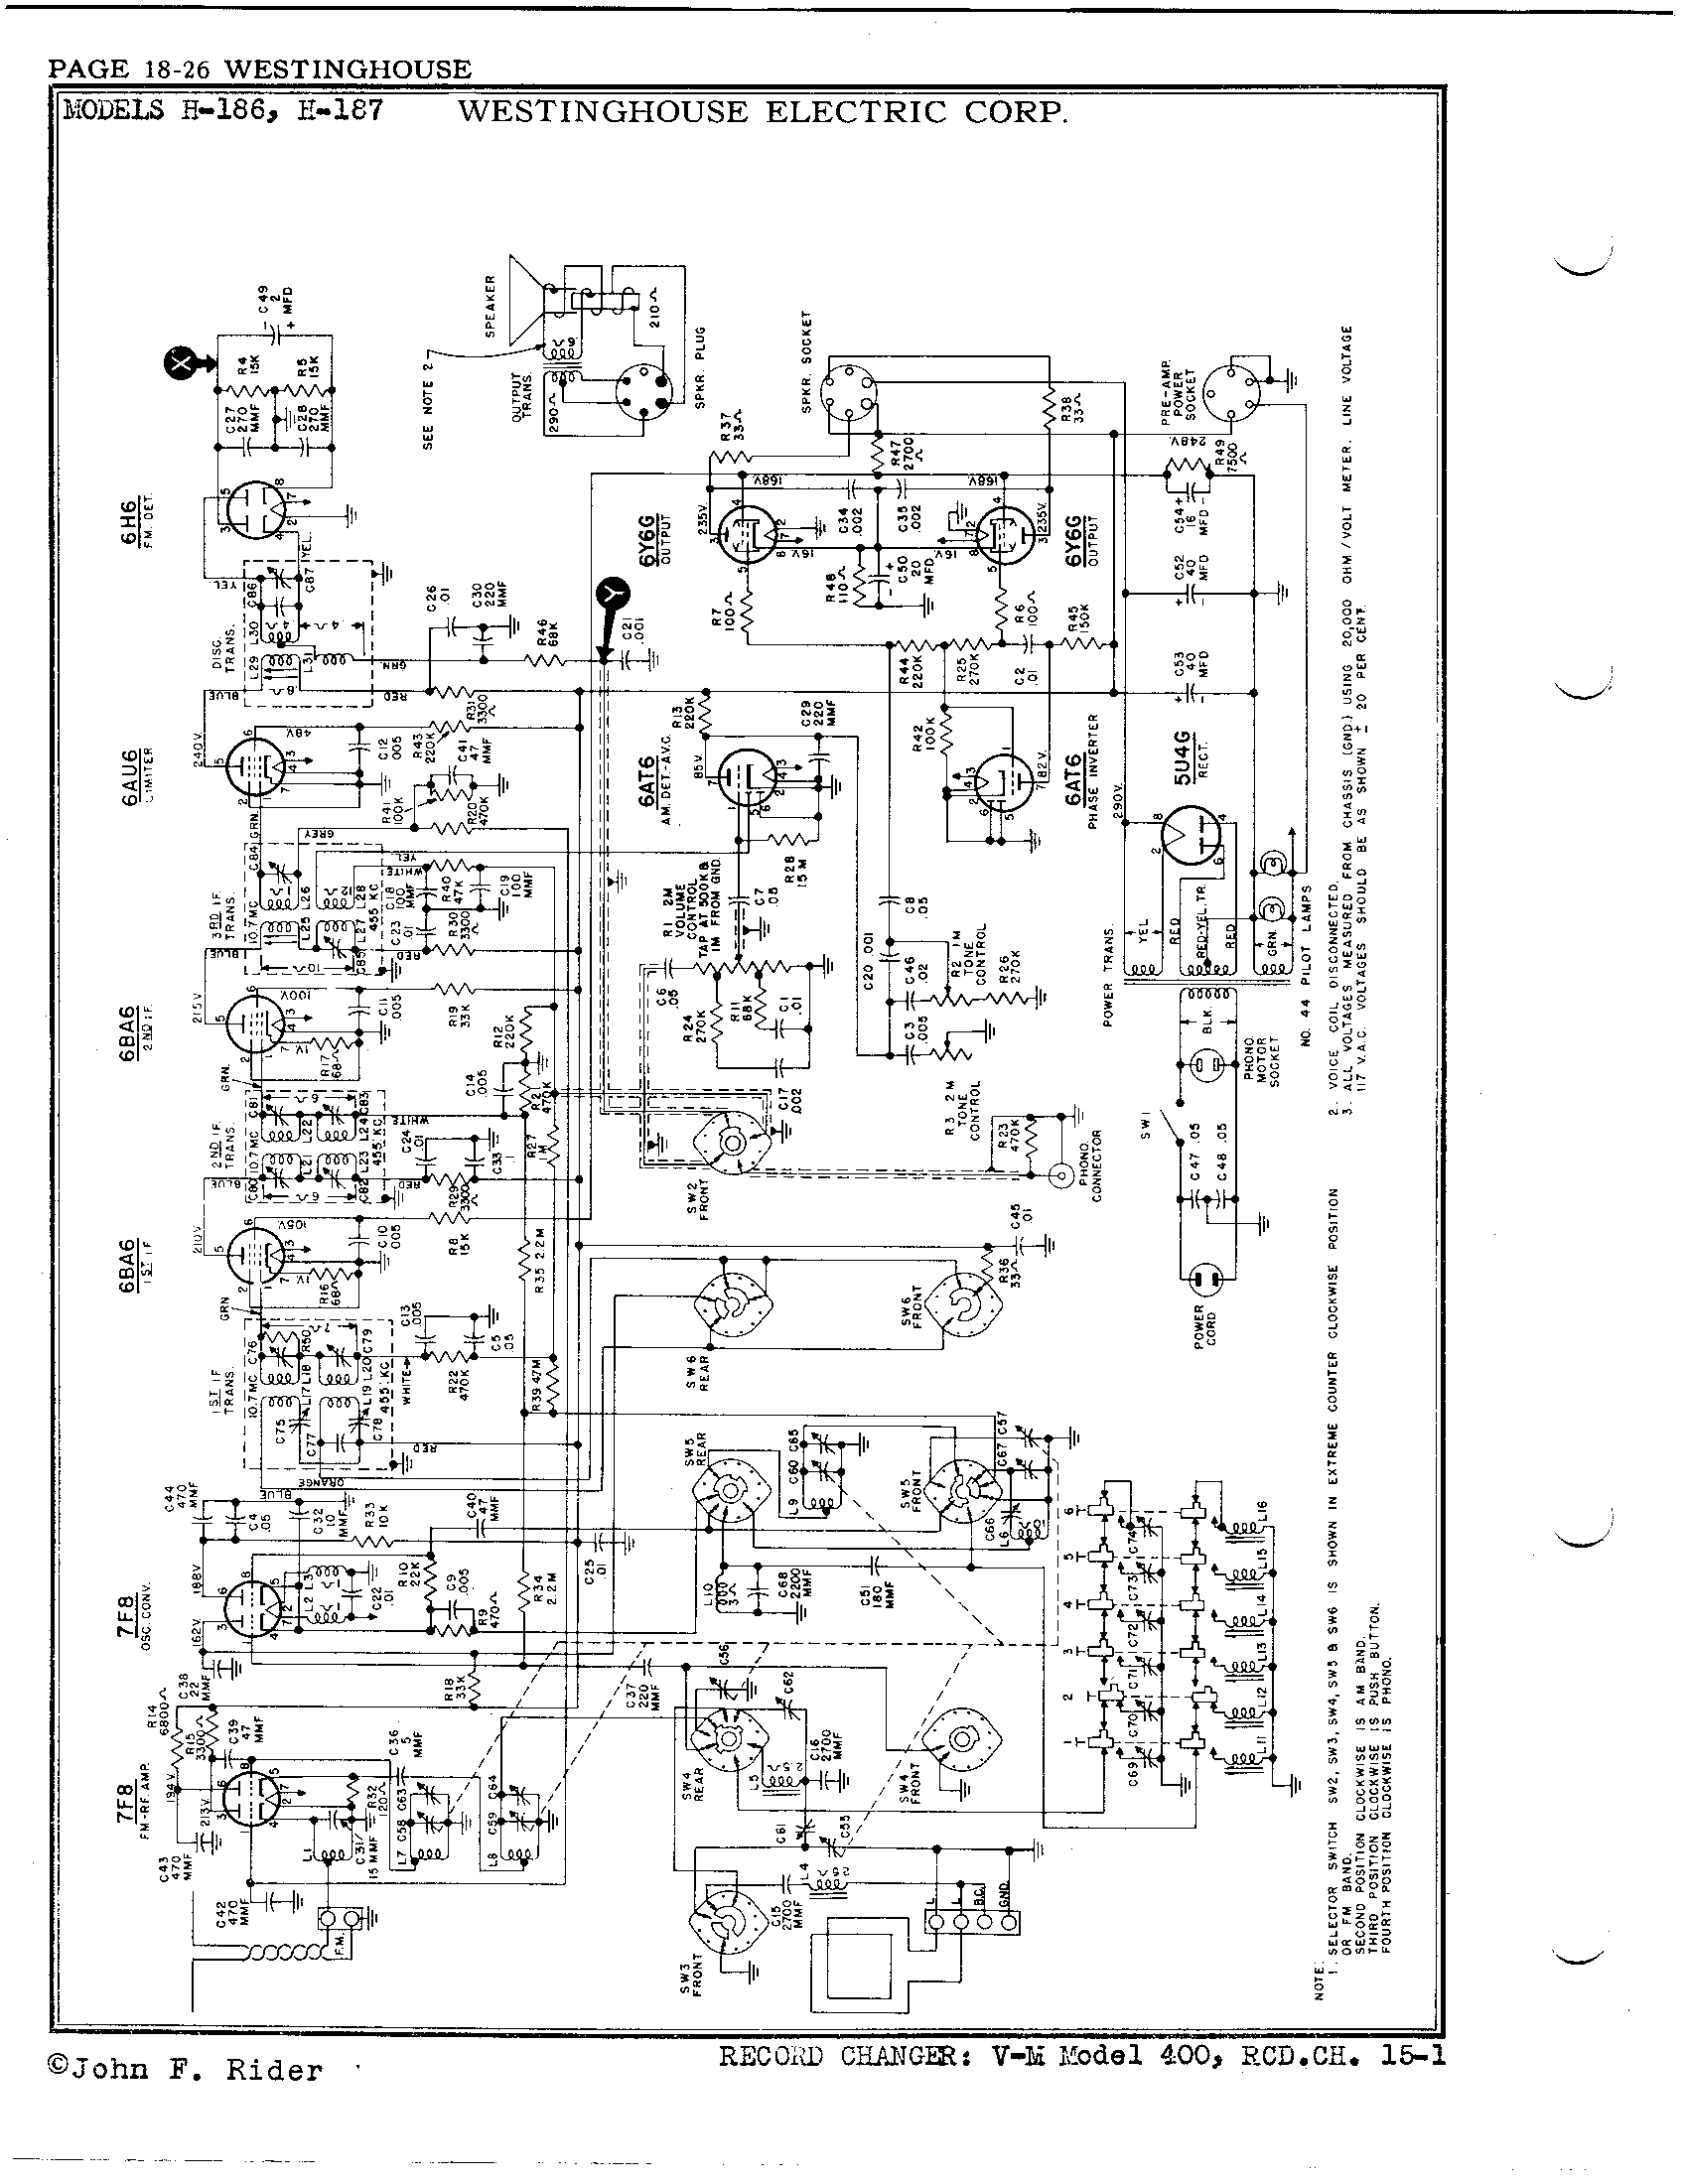 westinghouse_electric_corp_h_187_pg18-1 Westinghouse Motor Wiring Diagram on westinghouse motor starter, forward reverse drum switch diagram, westinghouse motor maintenance, westinghouse motors 1 4 hp, lathe compound slide parts diagram, white westinghouse dryer diagram, hs 25 loading diagram, kenmore electric dryer diagram, westinghouse motor cross reference, south bend lathe parts diagram, leeson motor parts diagram, frigidaire electric dryer diagram, westinghouse furnace model, westinghouse motor control diagram, baldor motor parts diagram, frigidaire gallery washer parts diagram, westinghouse furnace parts diagram, westinghouse electric motor connection diagram, westinghouse electric motor information, westinghouse type fht motor electric,